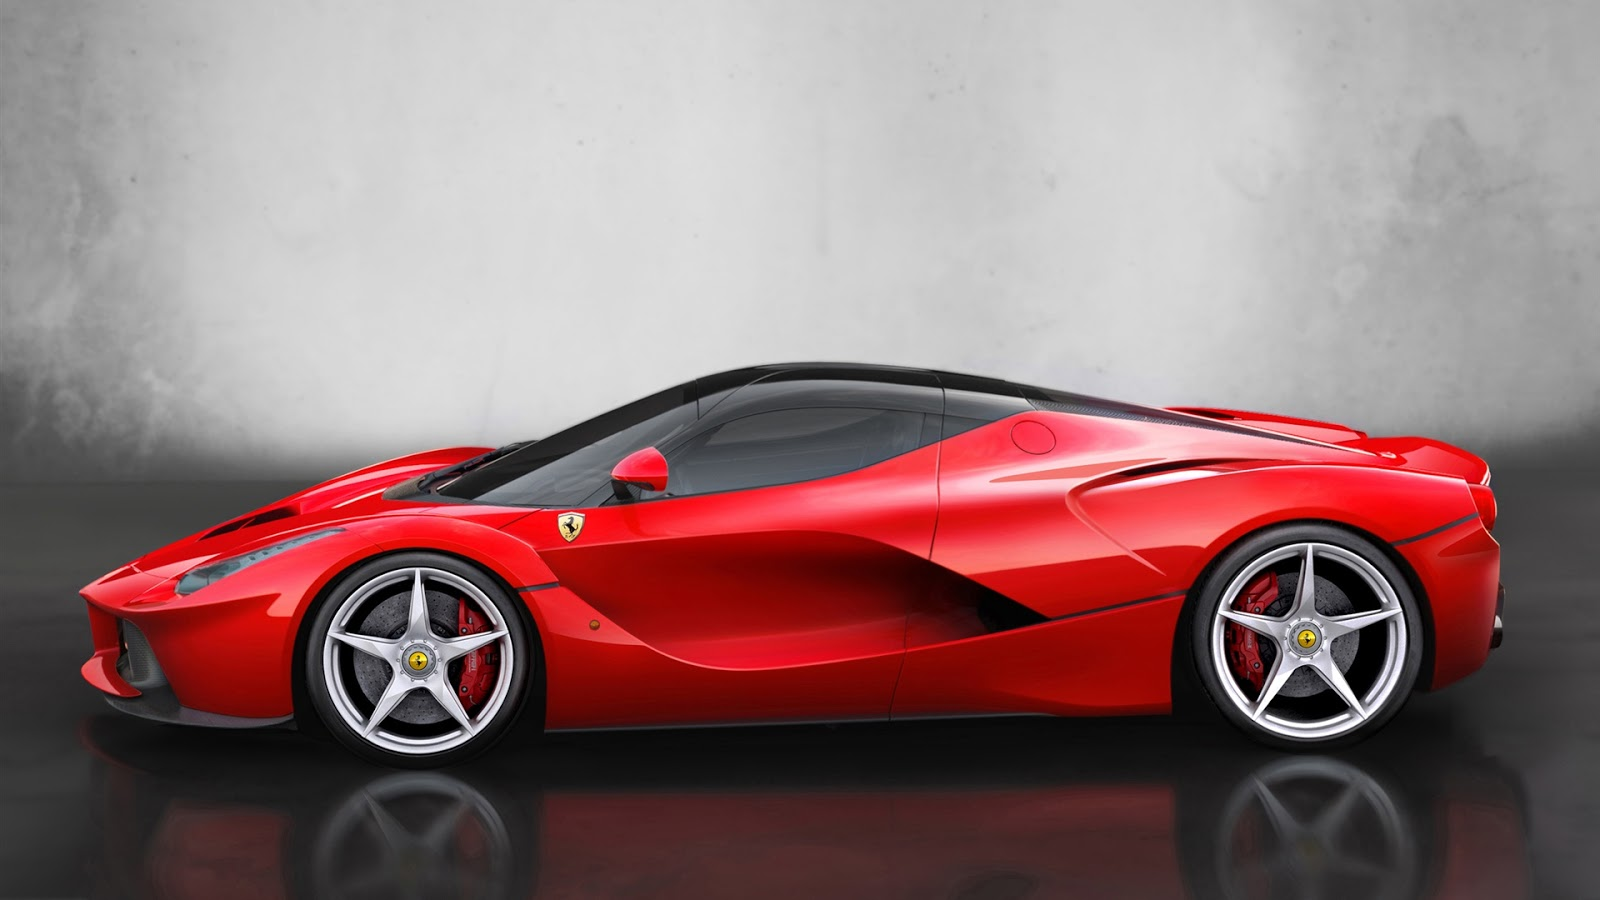 Ferrari Red Supercar Full HD Desktop Wallpapers 1080p 1600x900